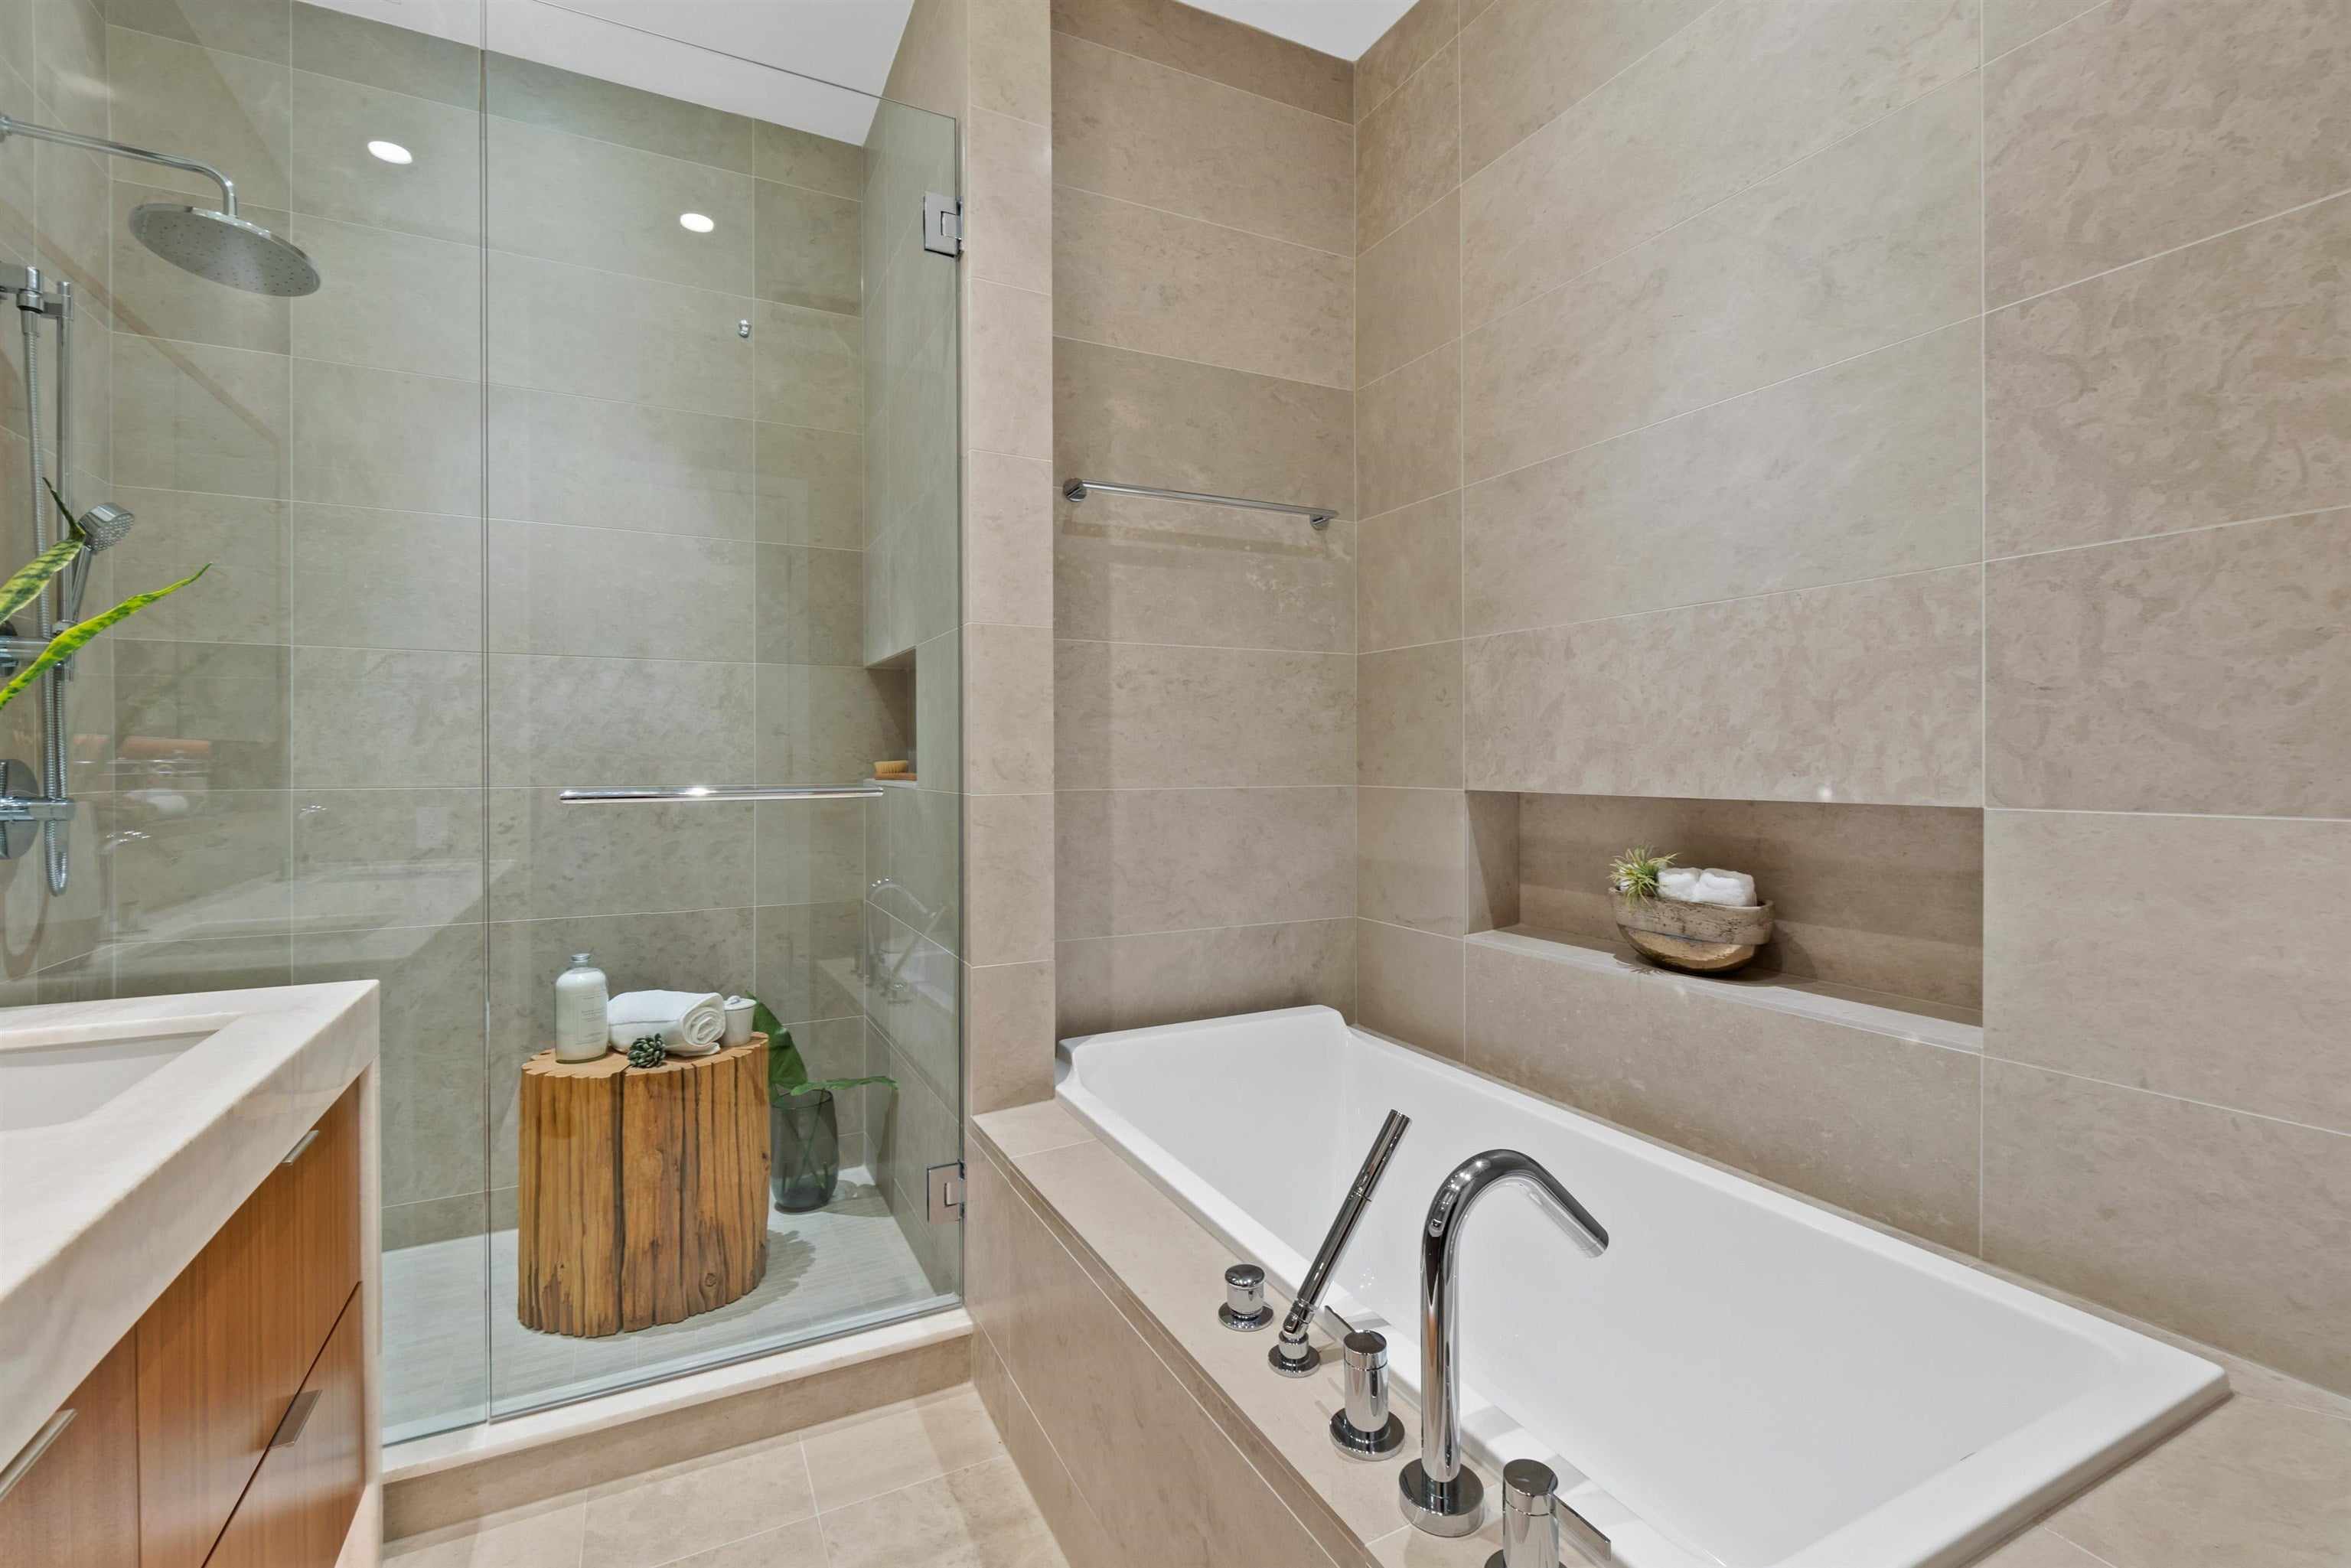 2402 125 E 14TH STREET - Central Lonsdale Apartment/Condo for sale, 2 Bedrooms (R2617870) - #27